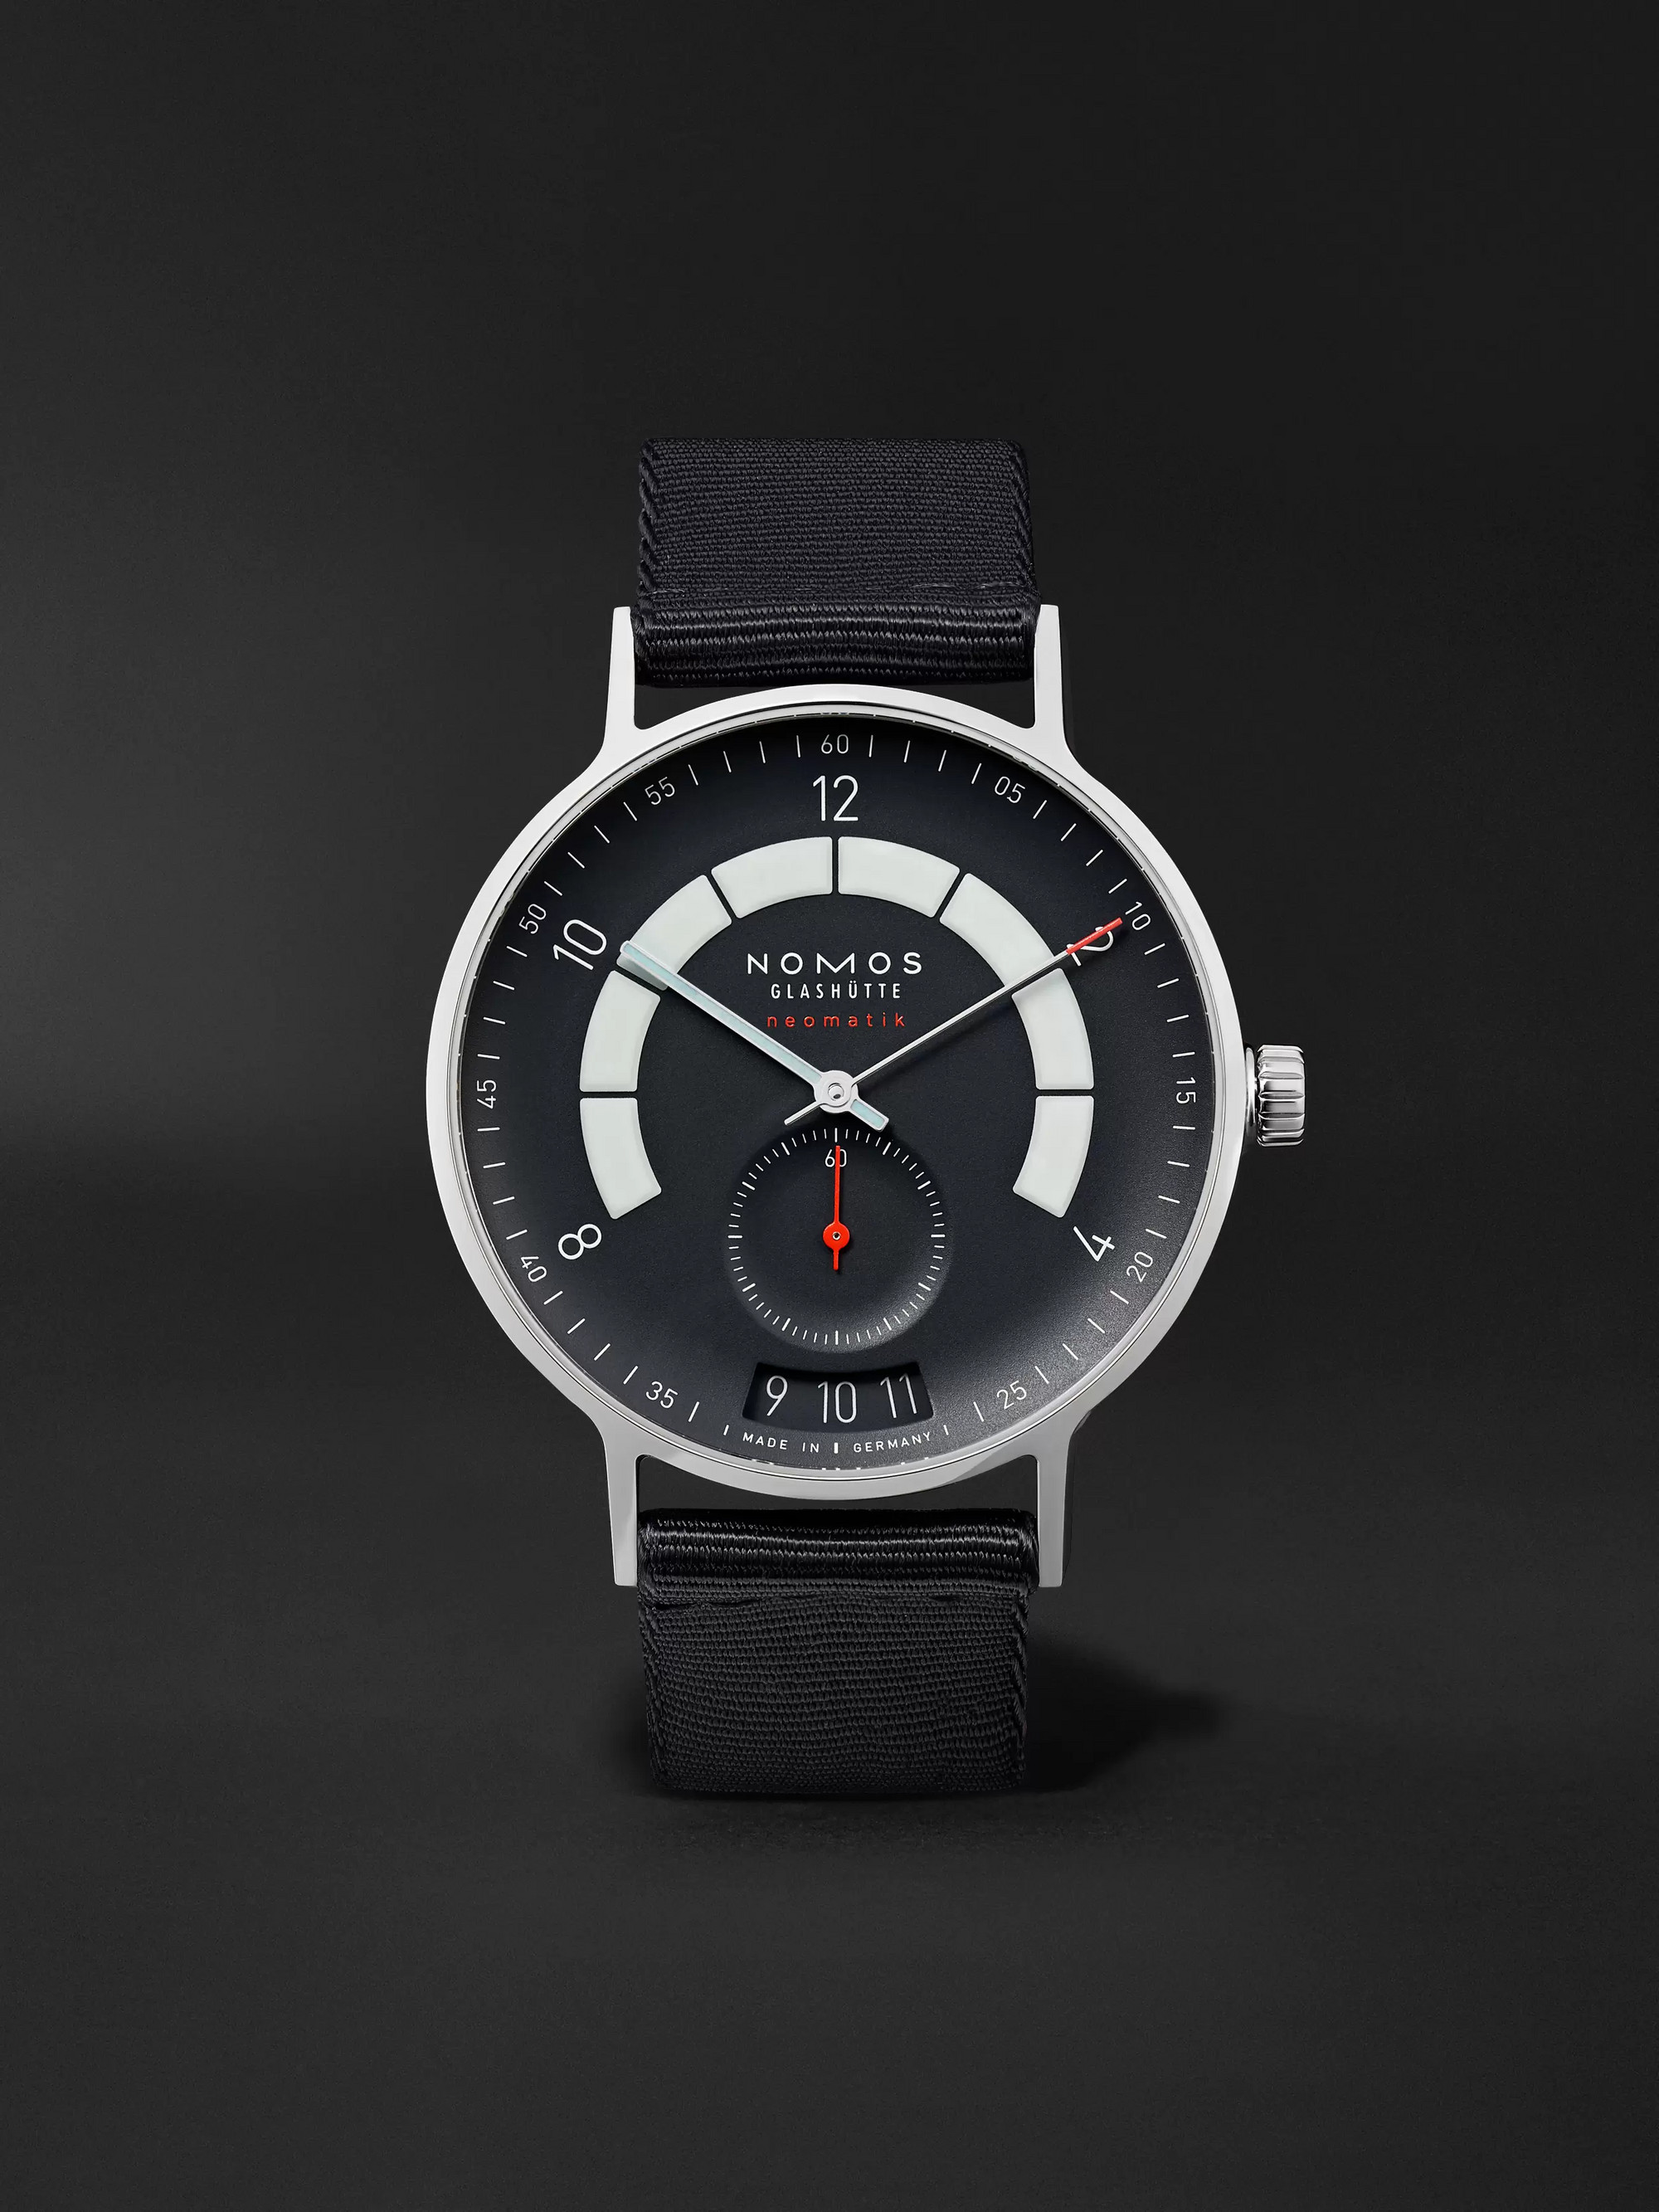 NOMOS Glashütte Autobahn Neomatik Datum Automatic 41mm Stainless Steel and Nylon Watch